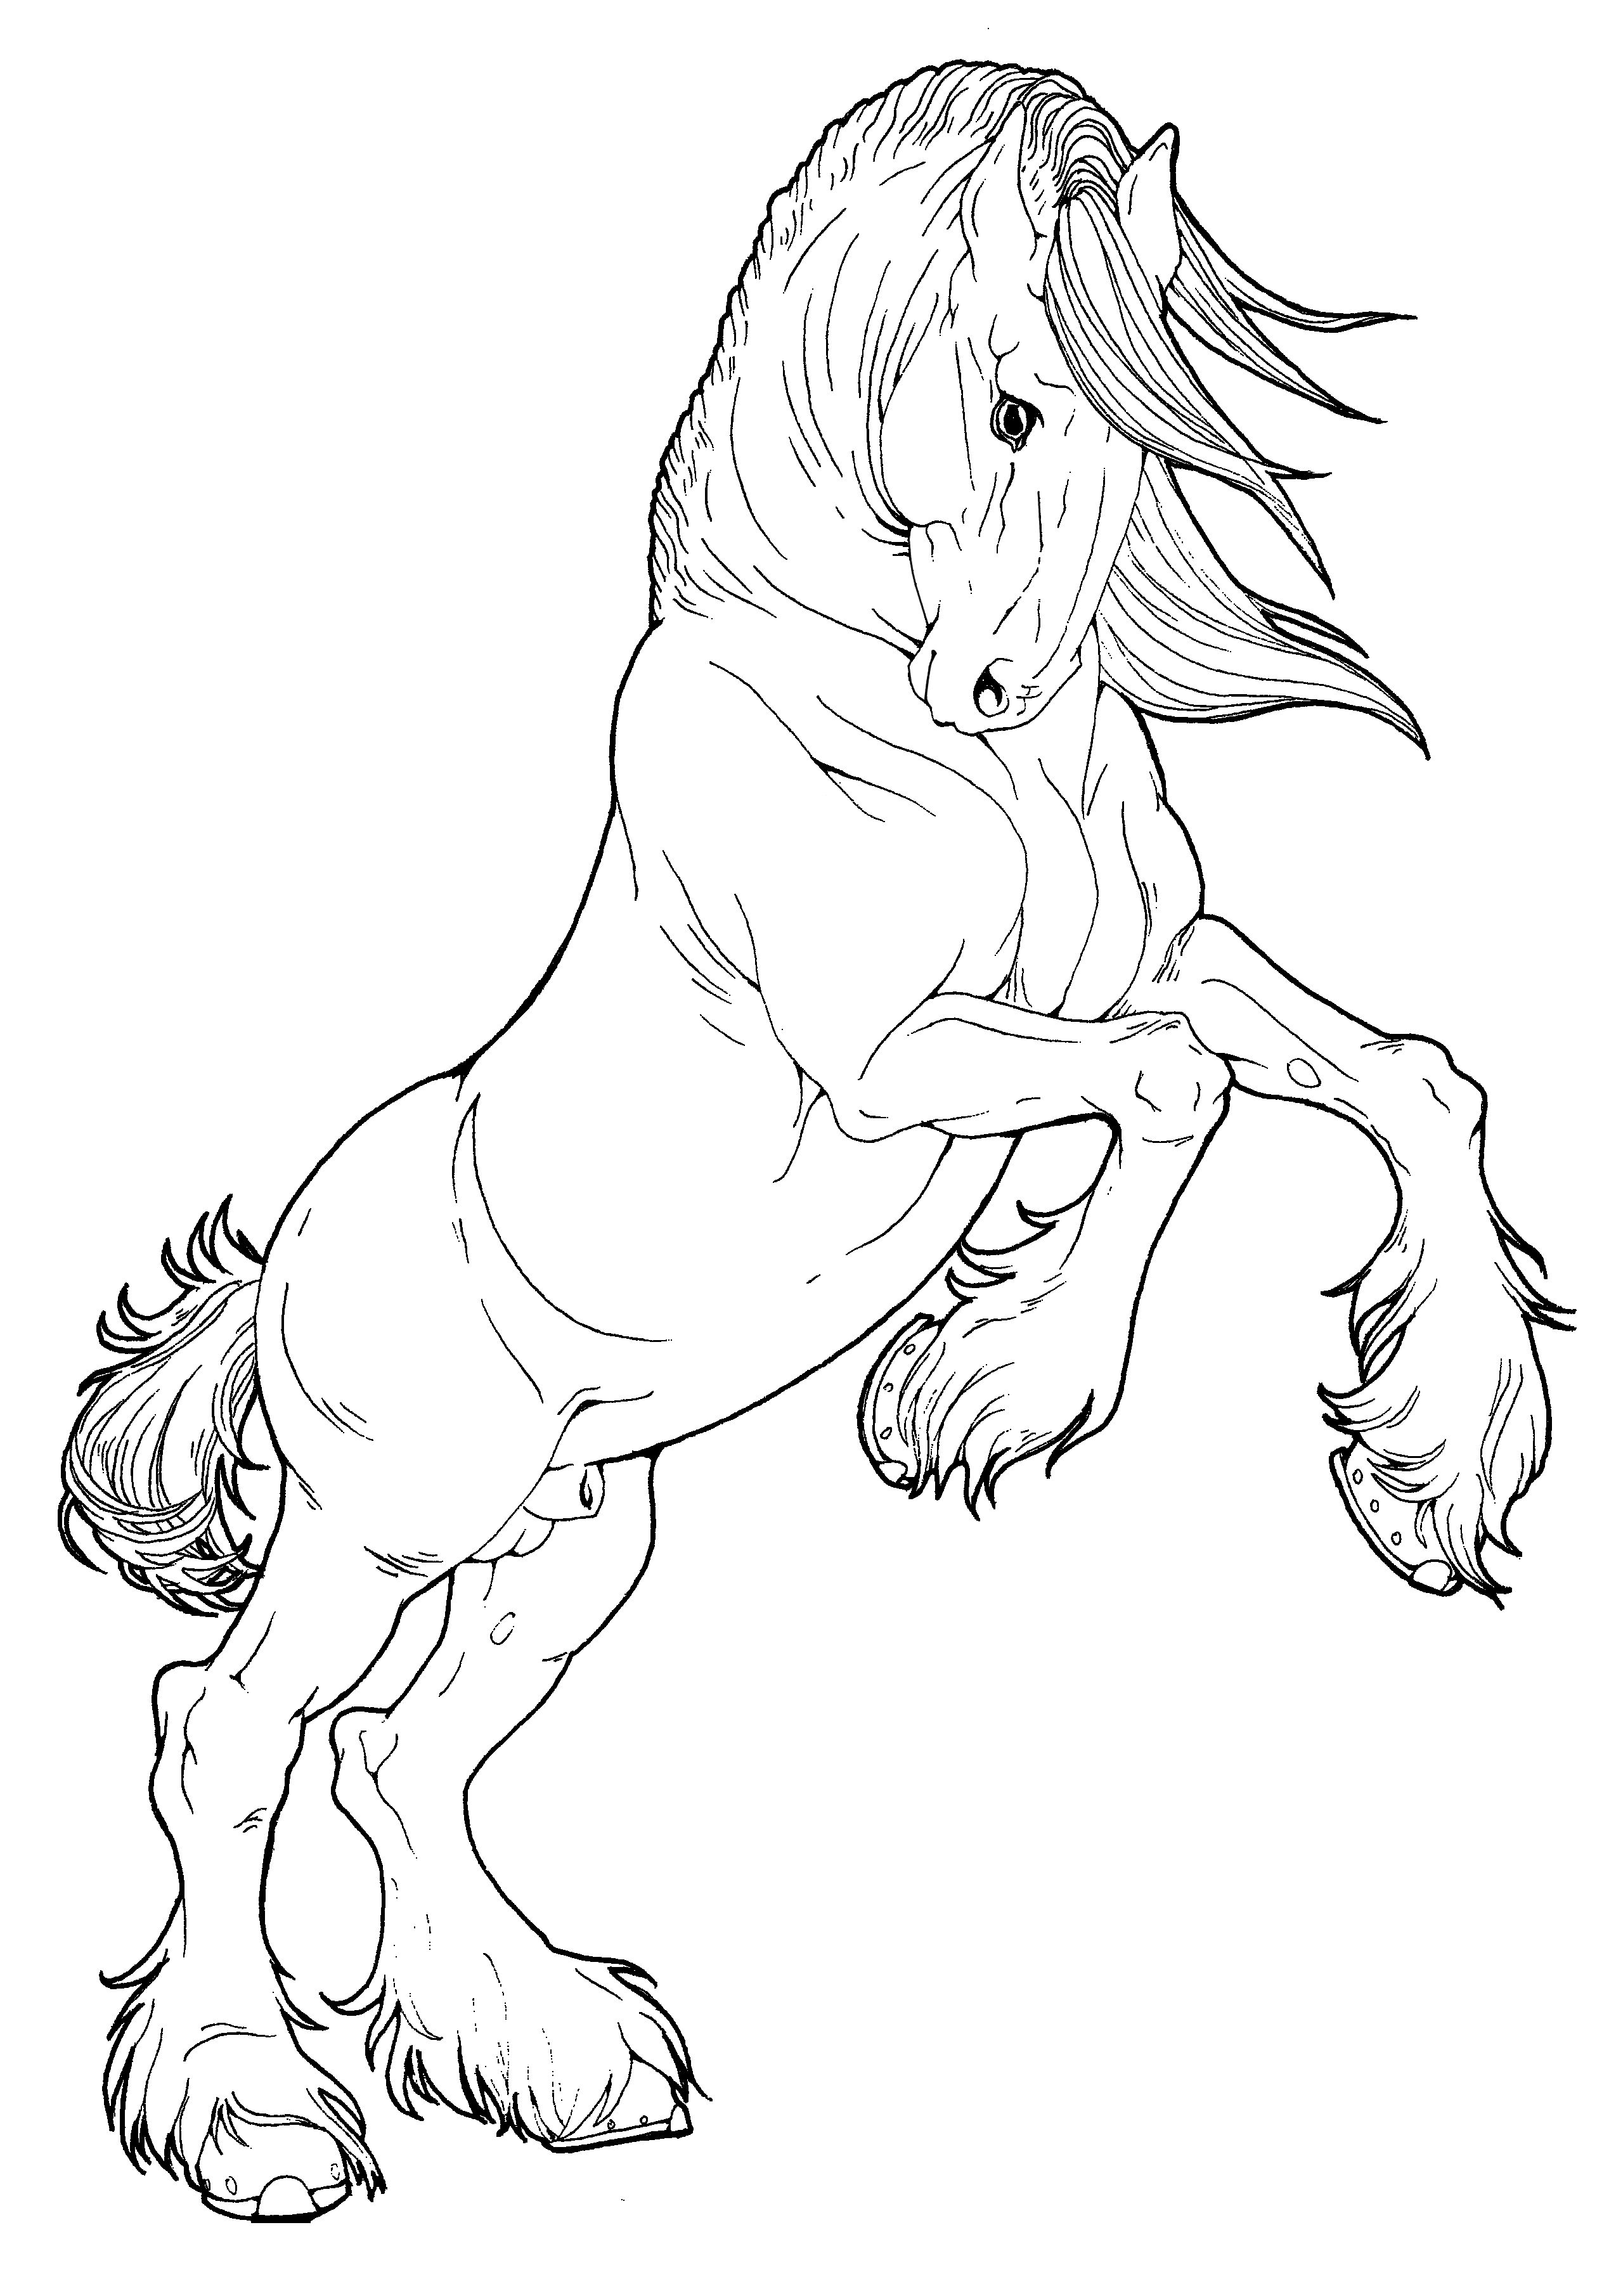 Pin By Eddie Corbett On My Works Xd Horse Coloring Pages Horse Drawings Horse Coloring